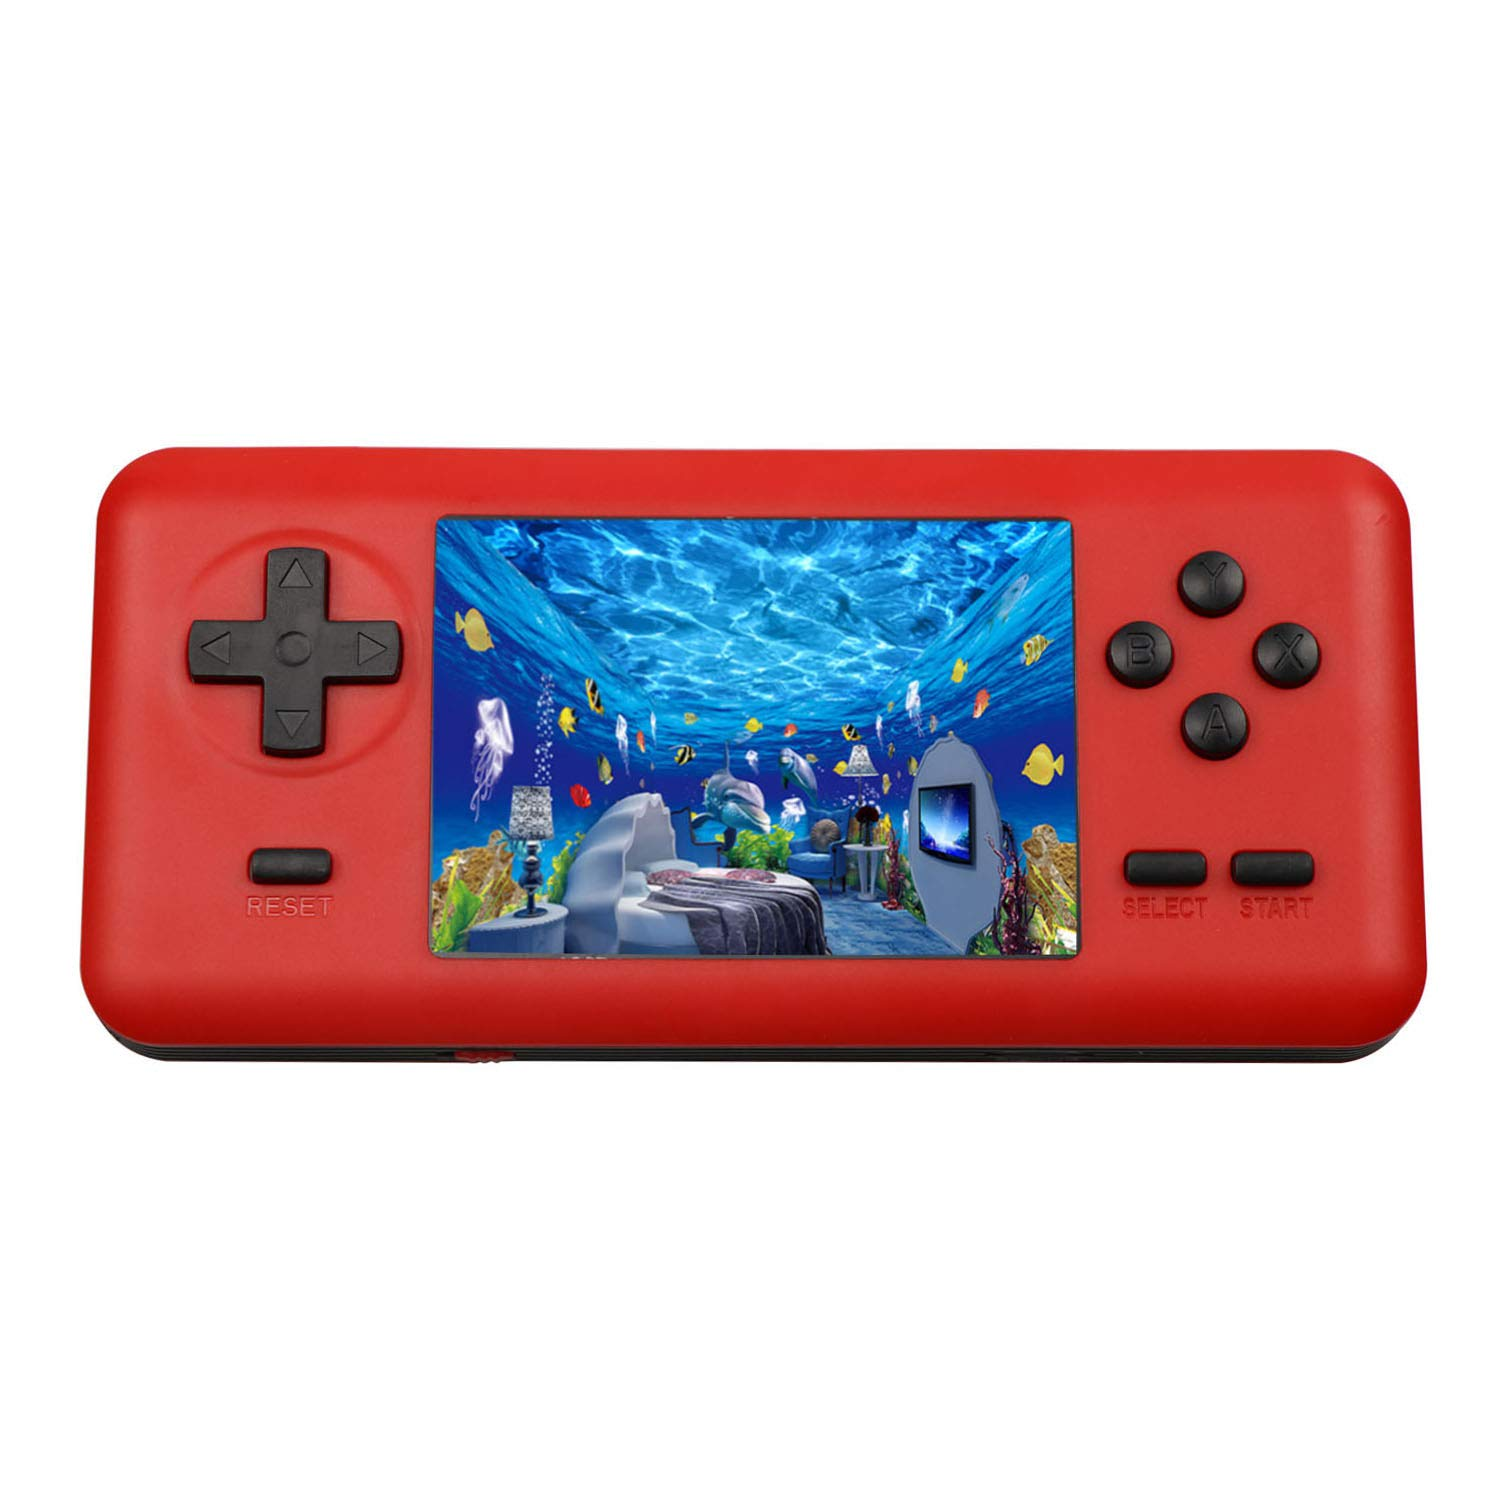 JAFATOY Handheld Retro Game Console for Kids Adults 150 Classic Games 8 Bit Games Player with AV Cable Can Play on TV Support TF Card Extensions Black